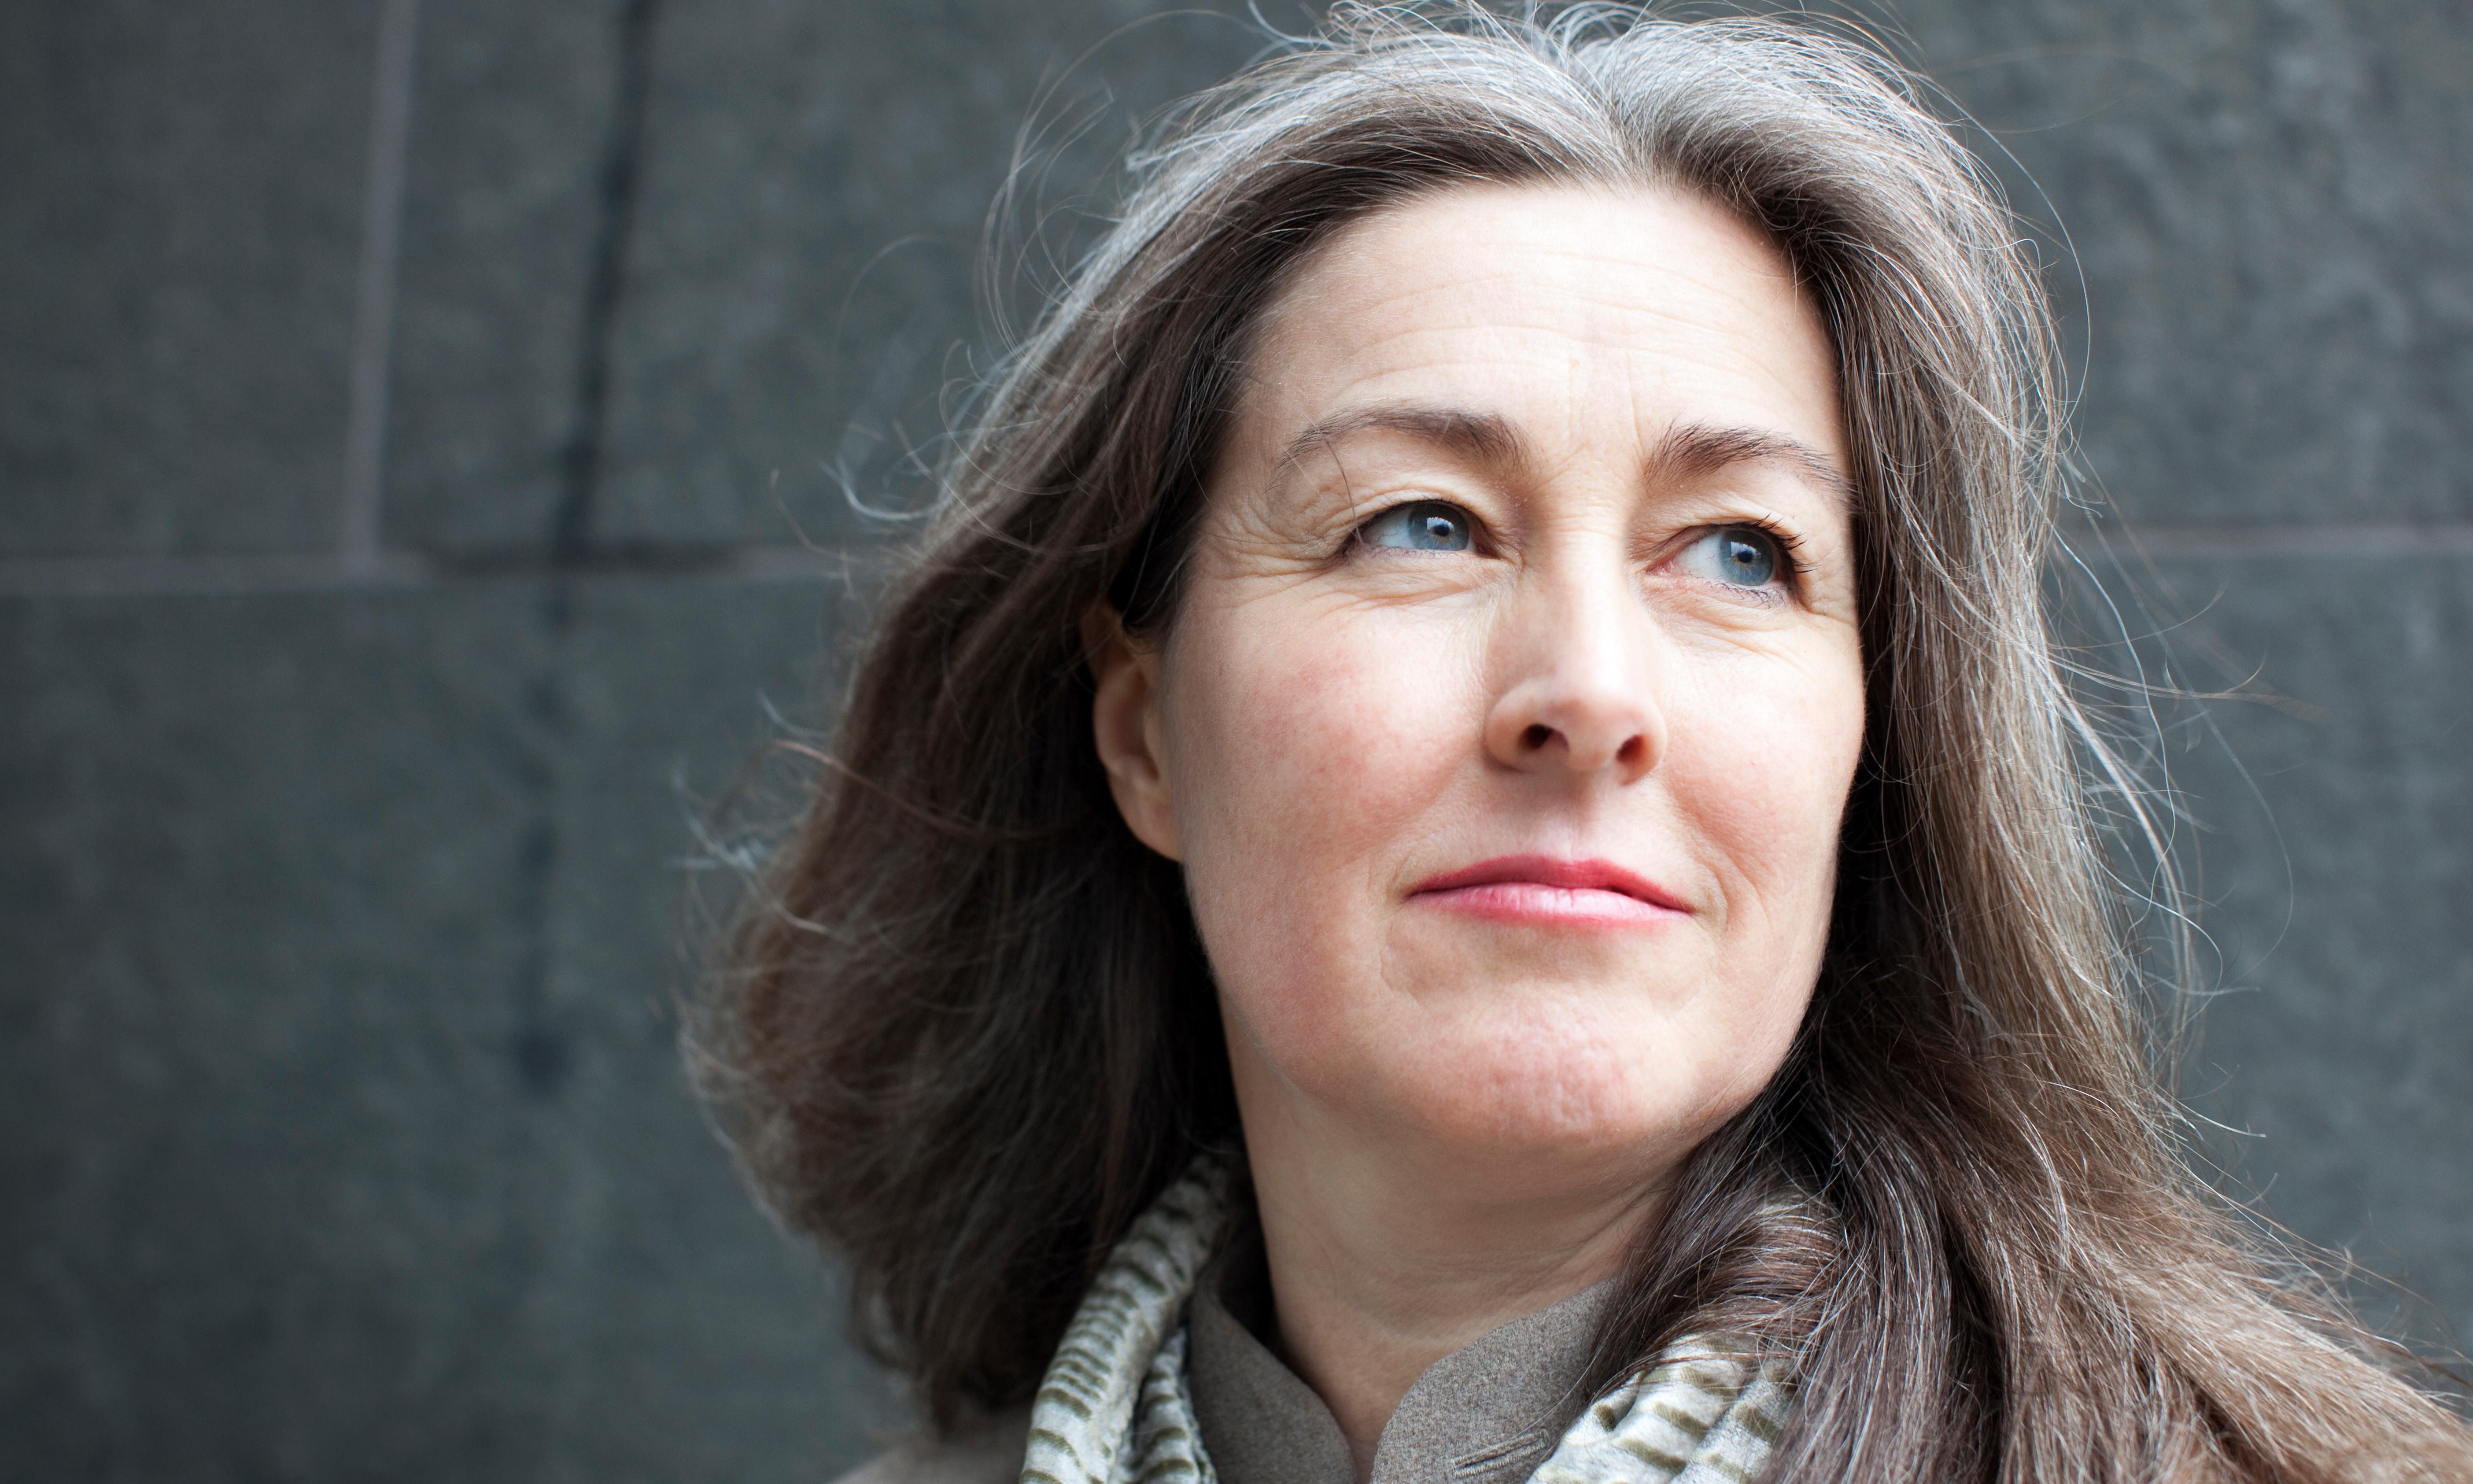 Polly Higgins, lawyer who fought for recognition of 'ecocide', dies aged 50